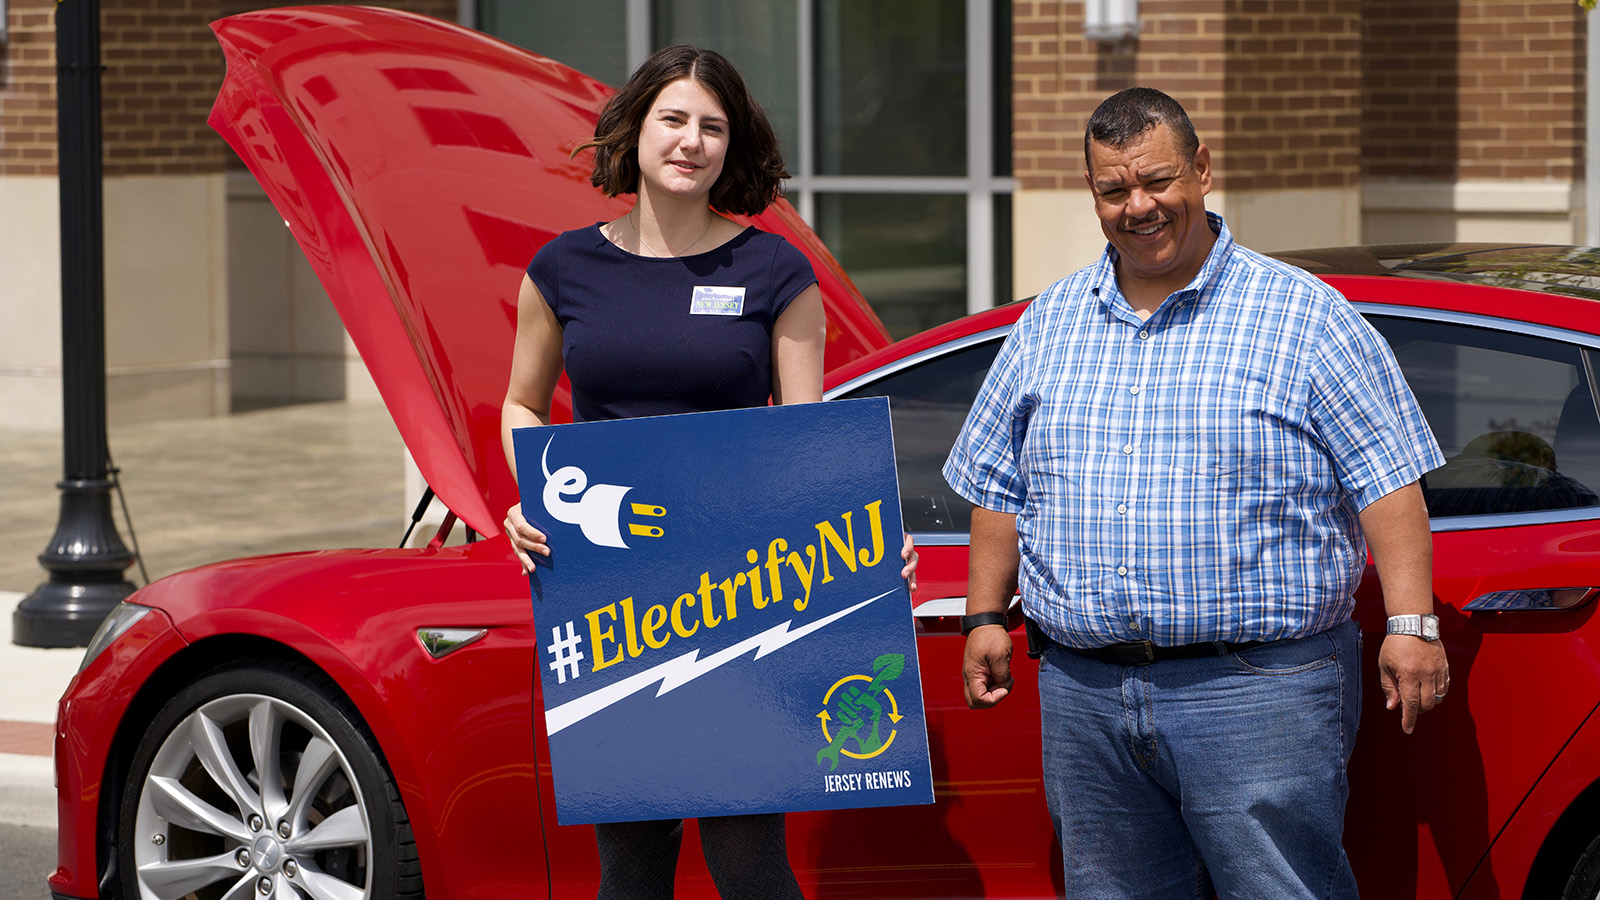 <h4>TO GET TO ZERO CARBON: ELECTRIFY CARS</h4><h5>We're calling for all new cars to be electric by 2035.</h5>